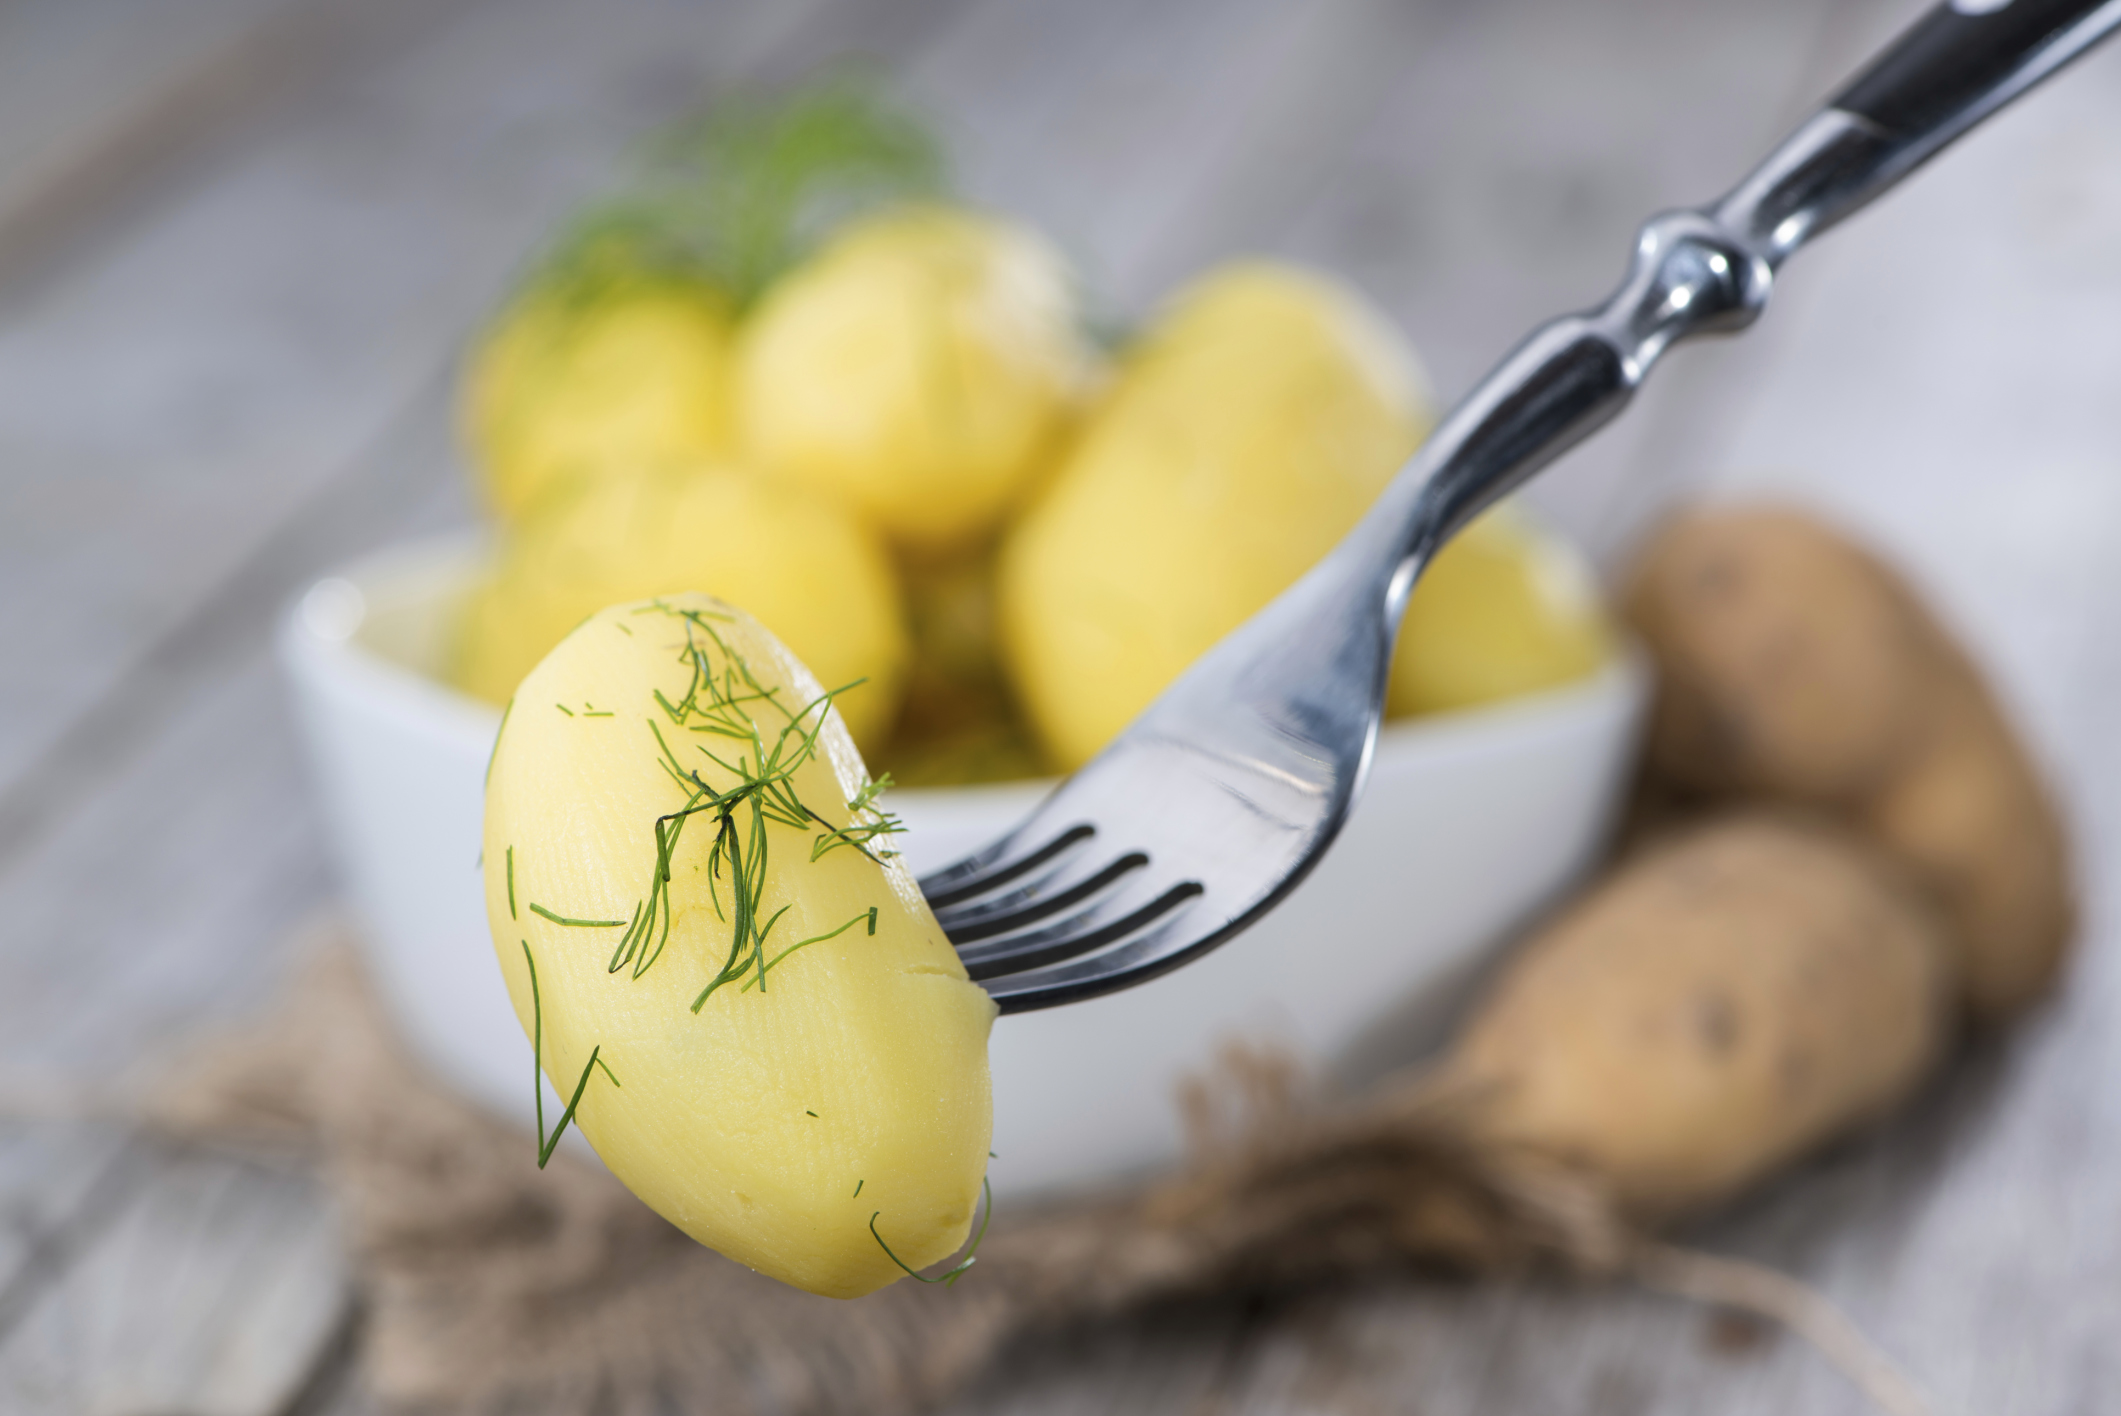 7 nutrition facts about potatoes you didn't know